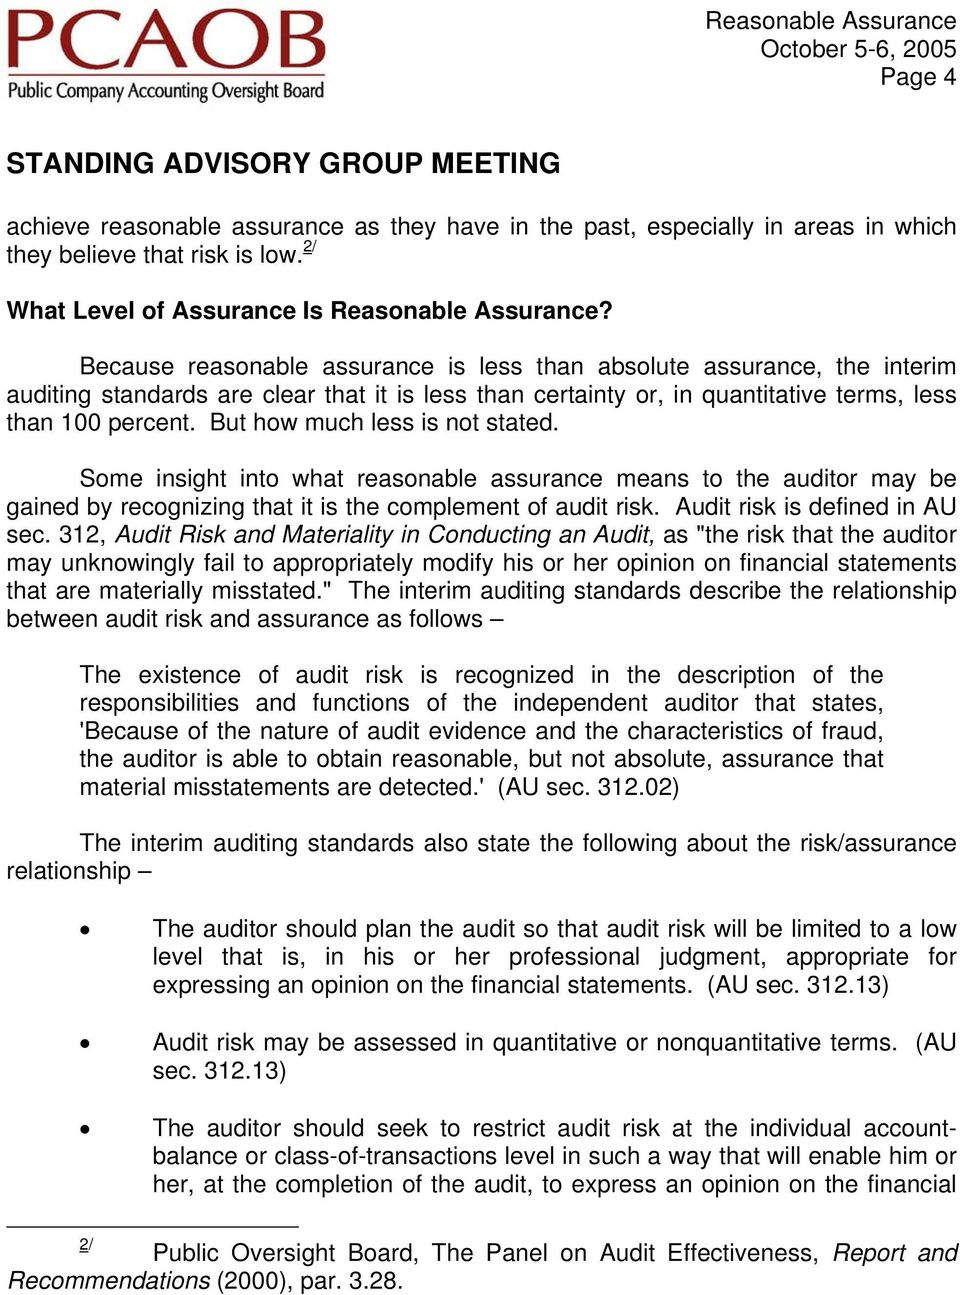 But how much less is not stated. Some insight into what reasonable assurance means to the auditor may be gained by recognizing that it is the complement of audit risk. Audit risk is defined in AU sec.